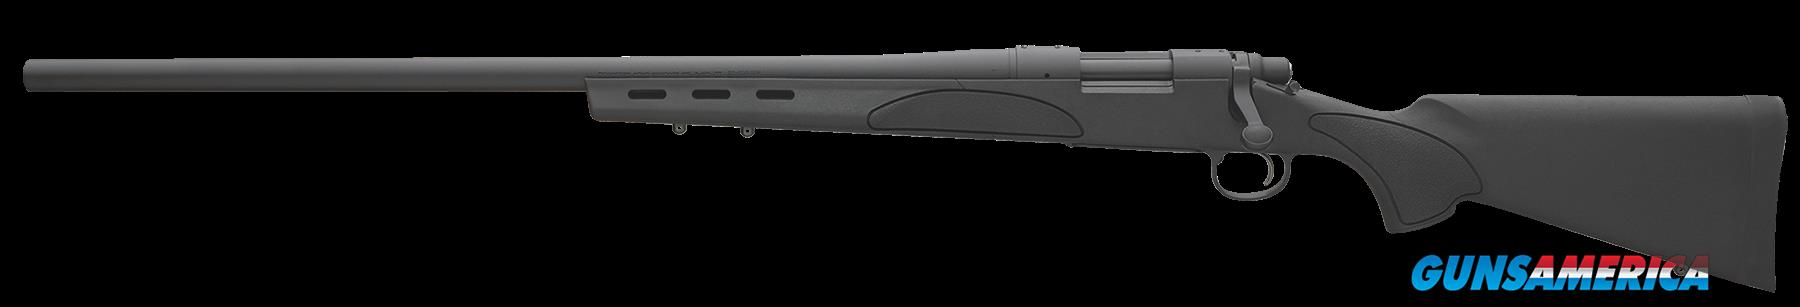 "Remington Firearms 84227 700 SPS Varmint Bolt 223 Rem 26"" 5+1 Synthetic Black Stk Blued  Guns > Rifles > R Misc Rifles"